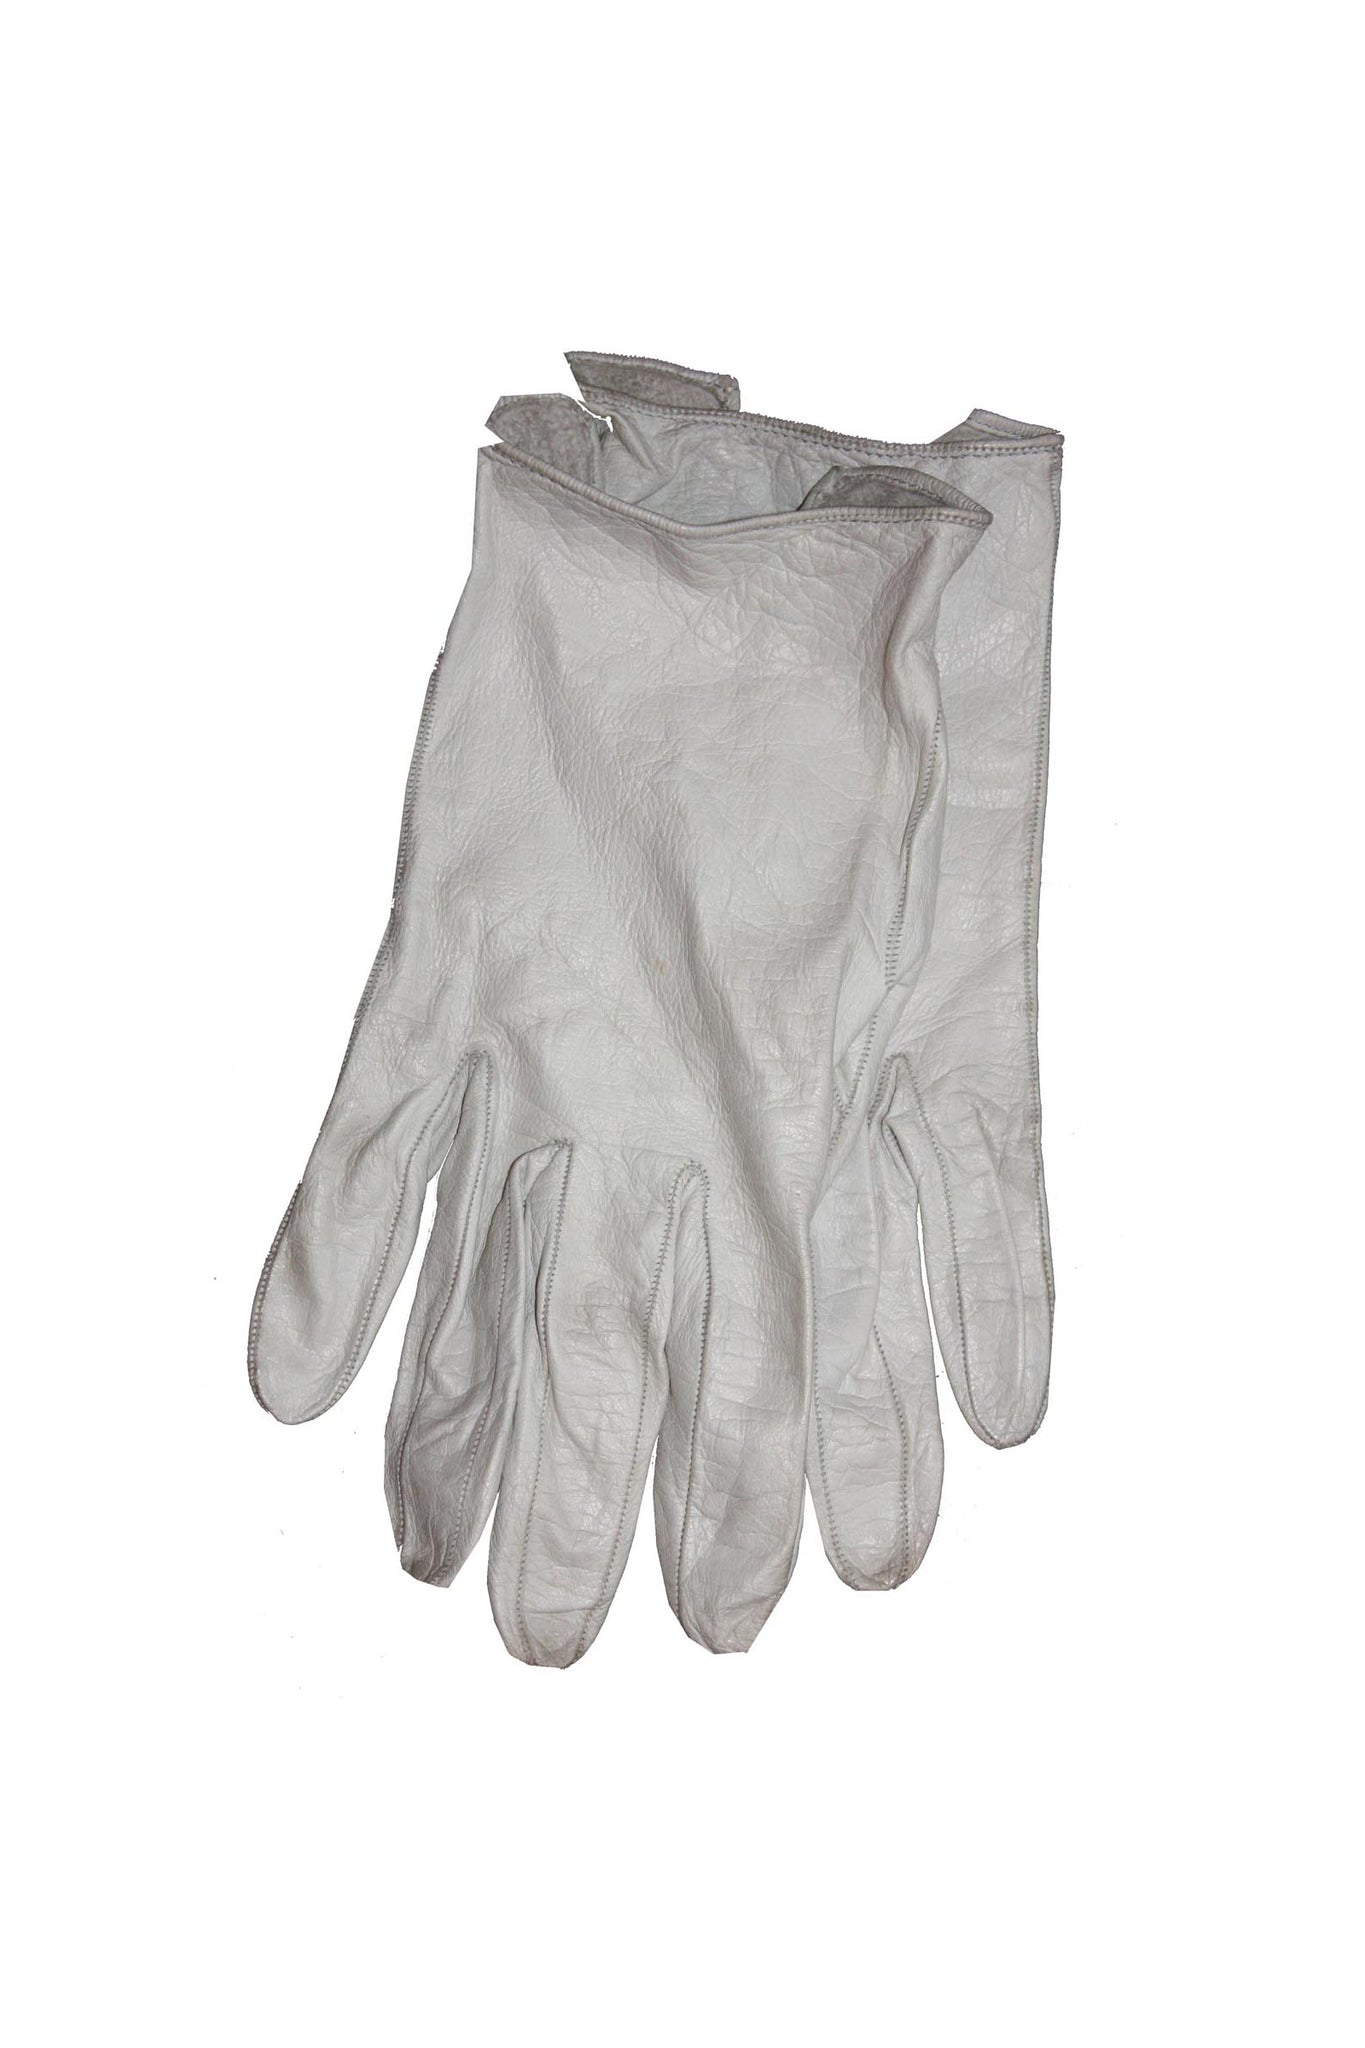 1950's white leather gloves - SoLovesVintage